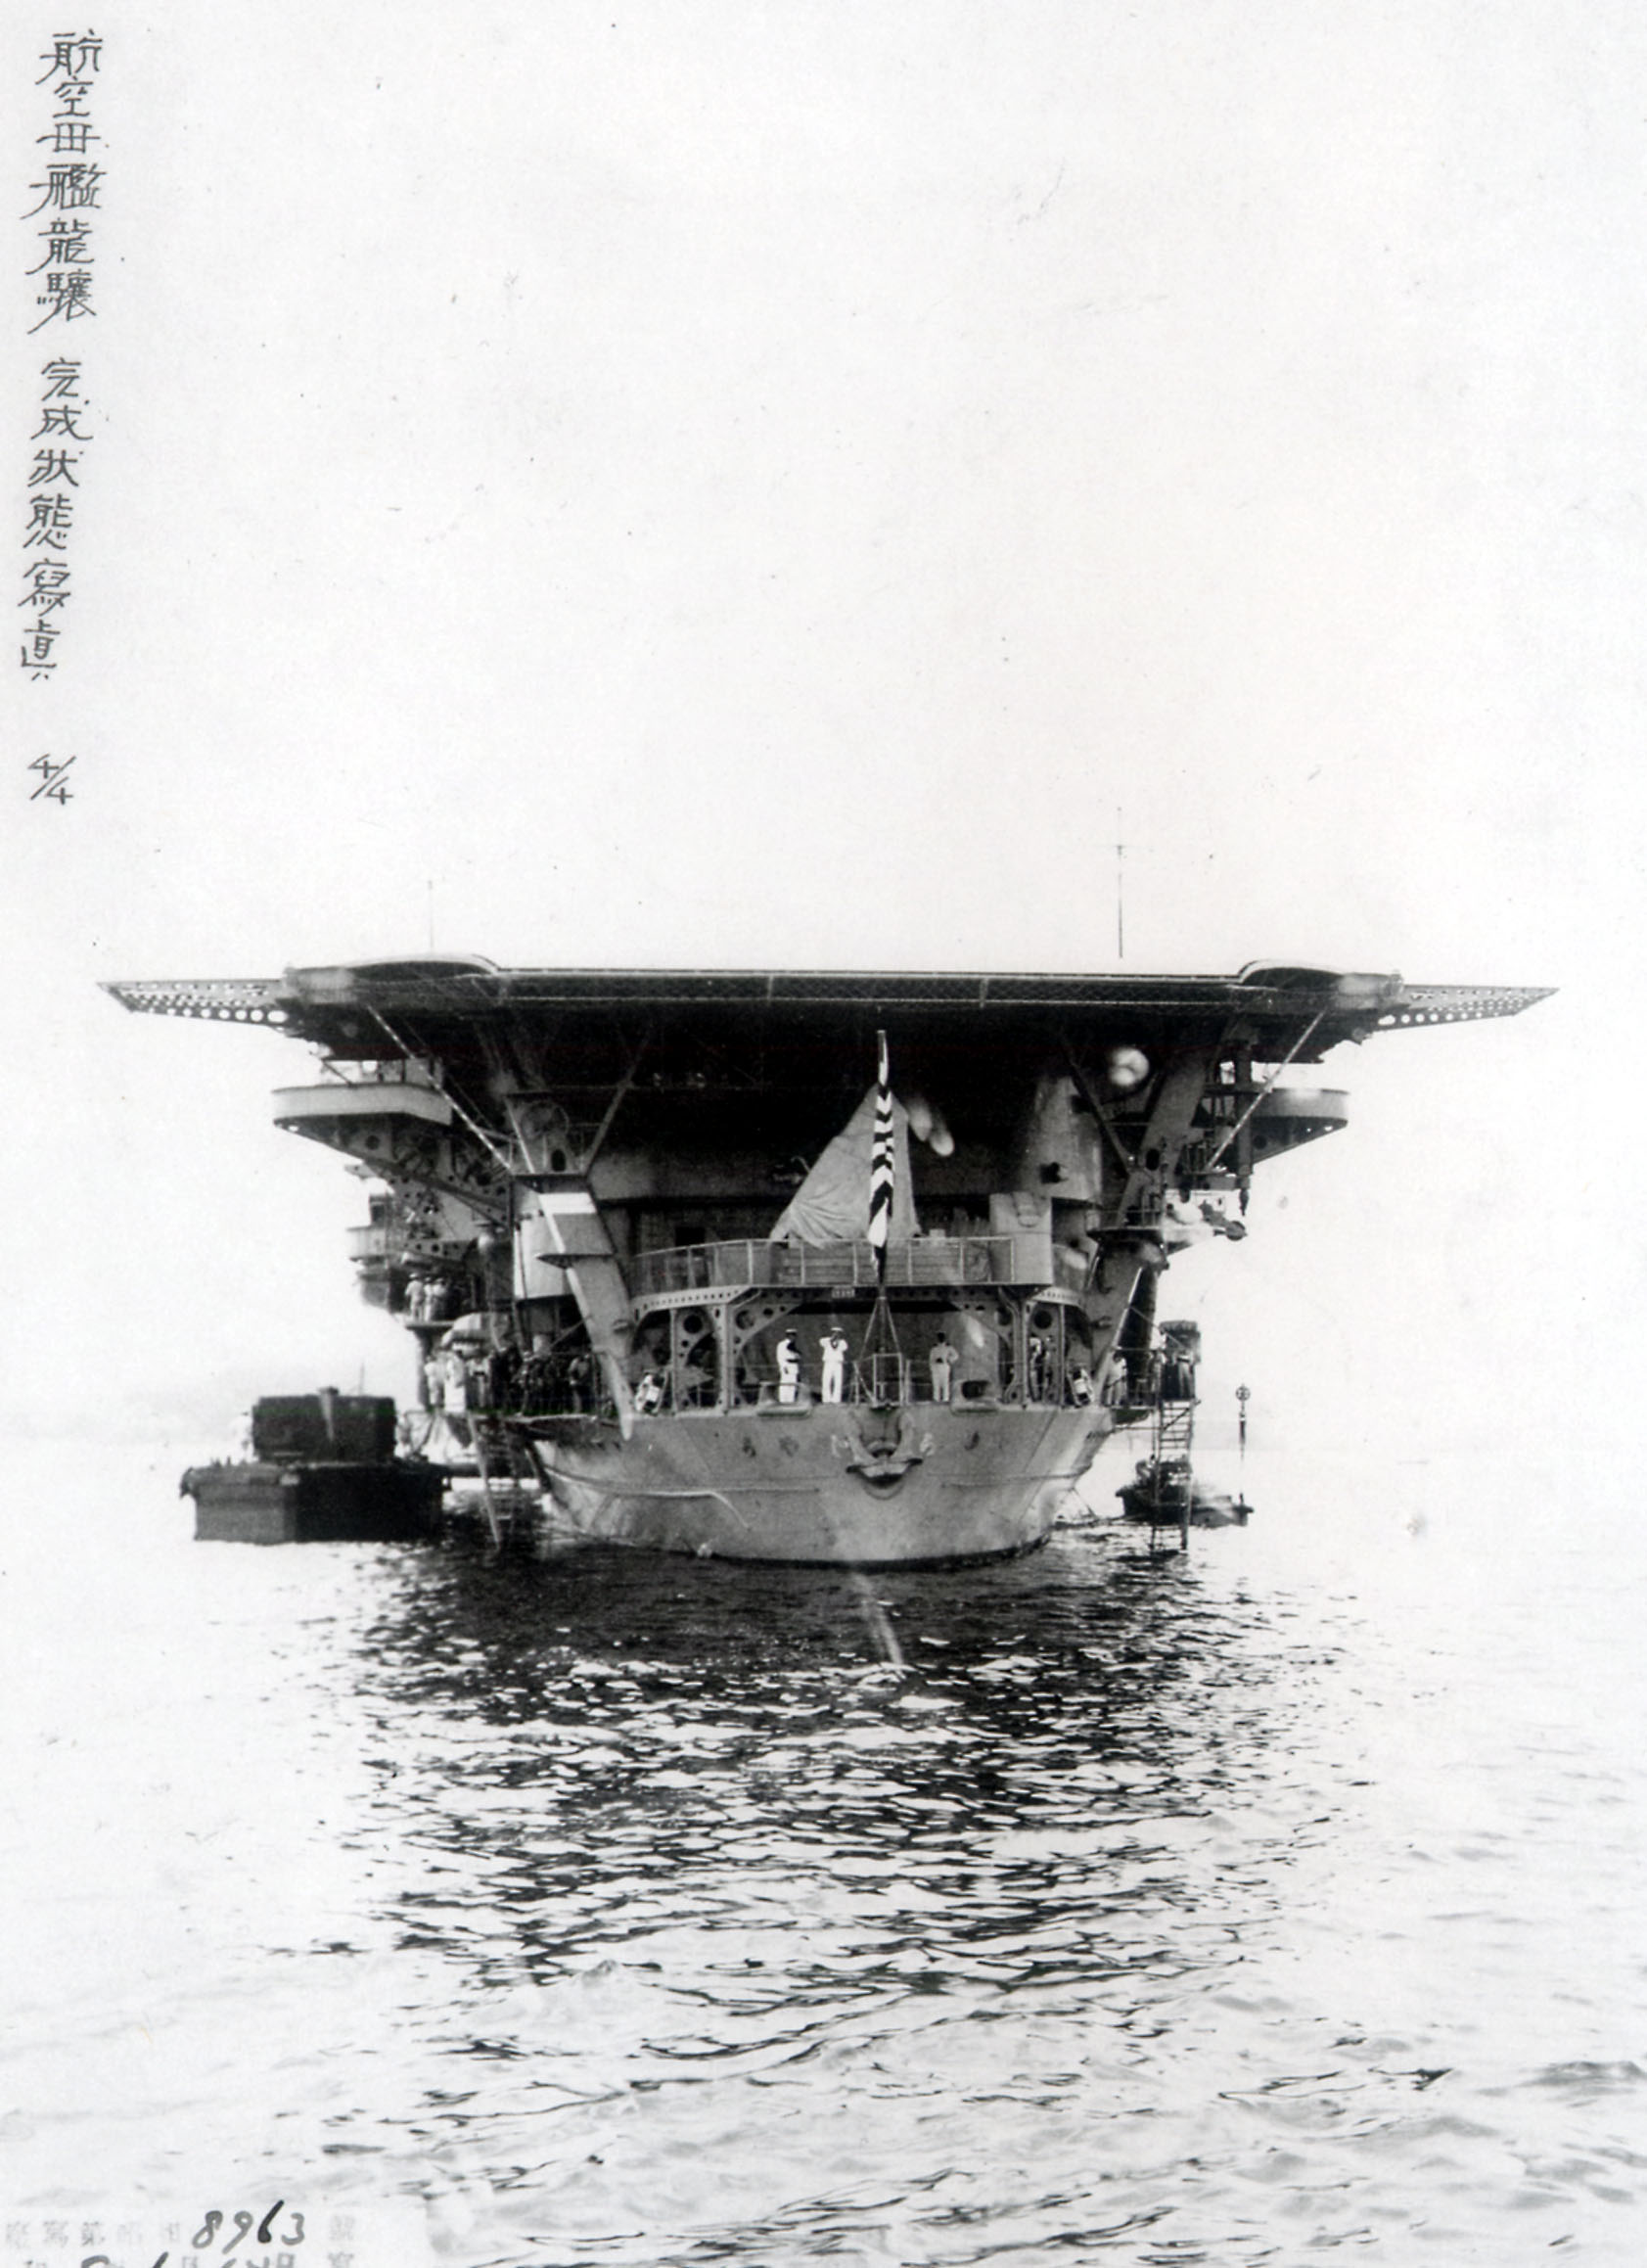 Japanese_aircraft_carrier_Ryūjō_Back.jpg